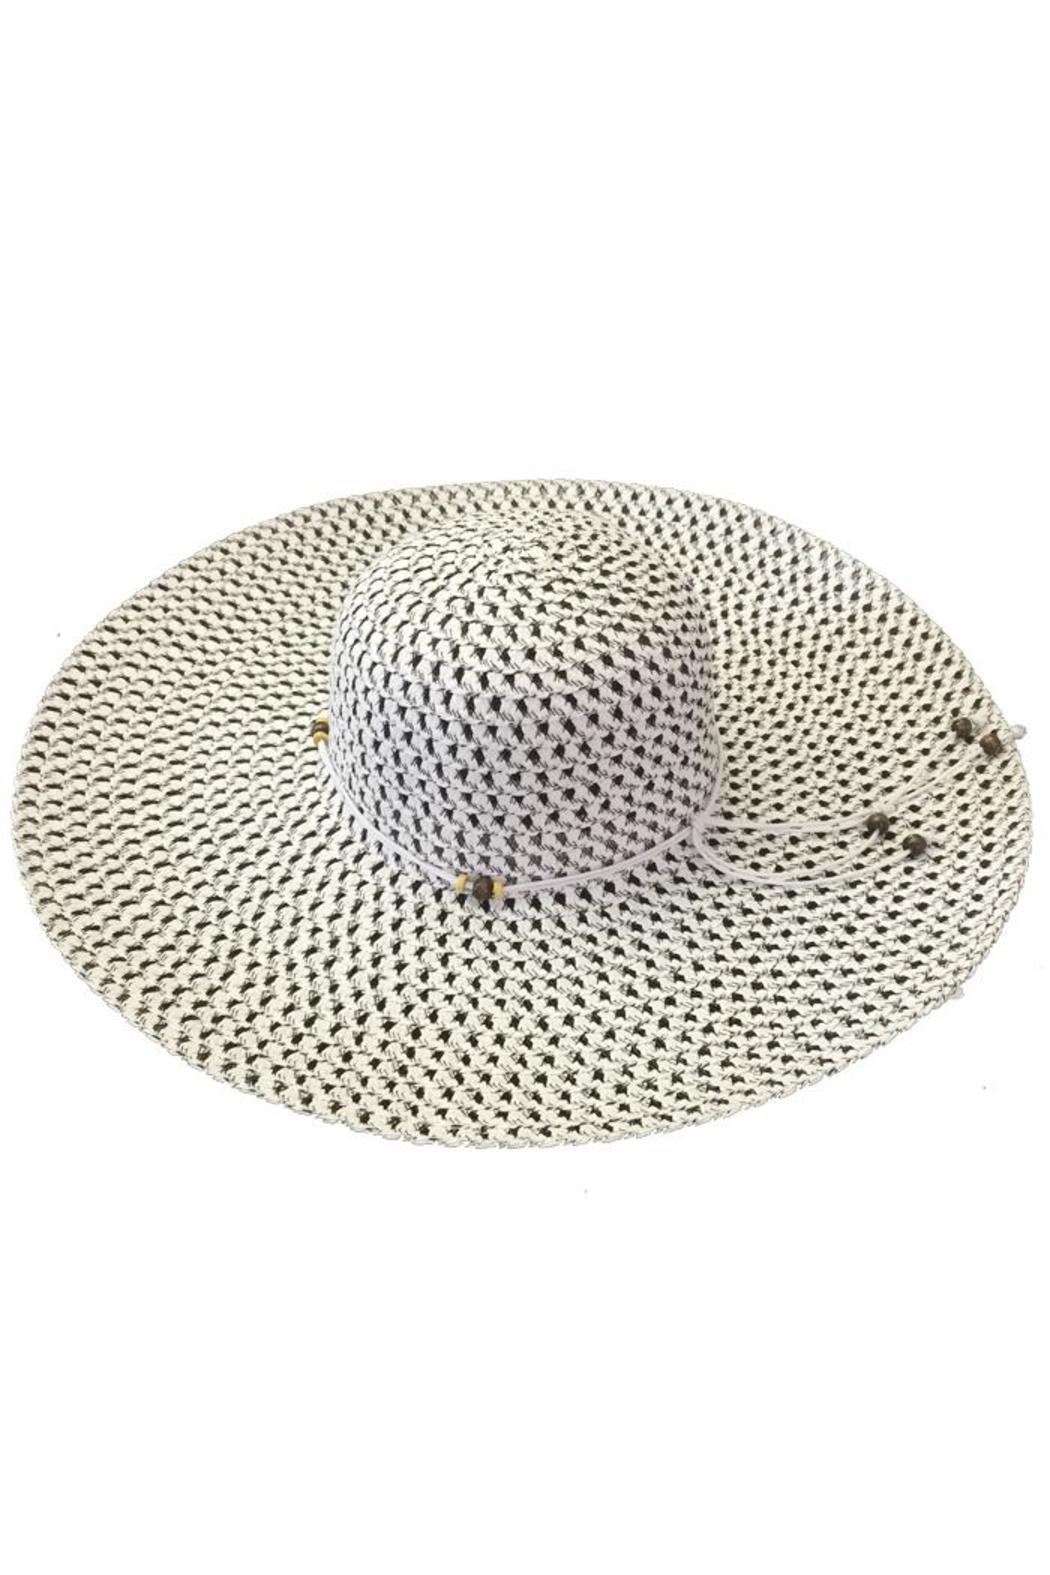 tu-anh boutique White Rope-Band Sunhat - Main Image